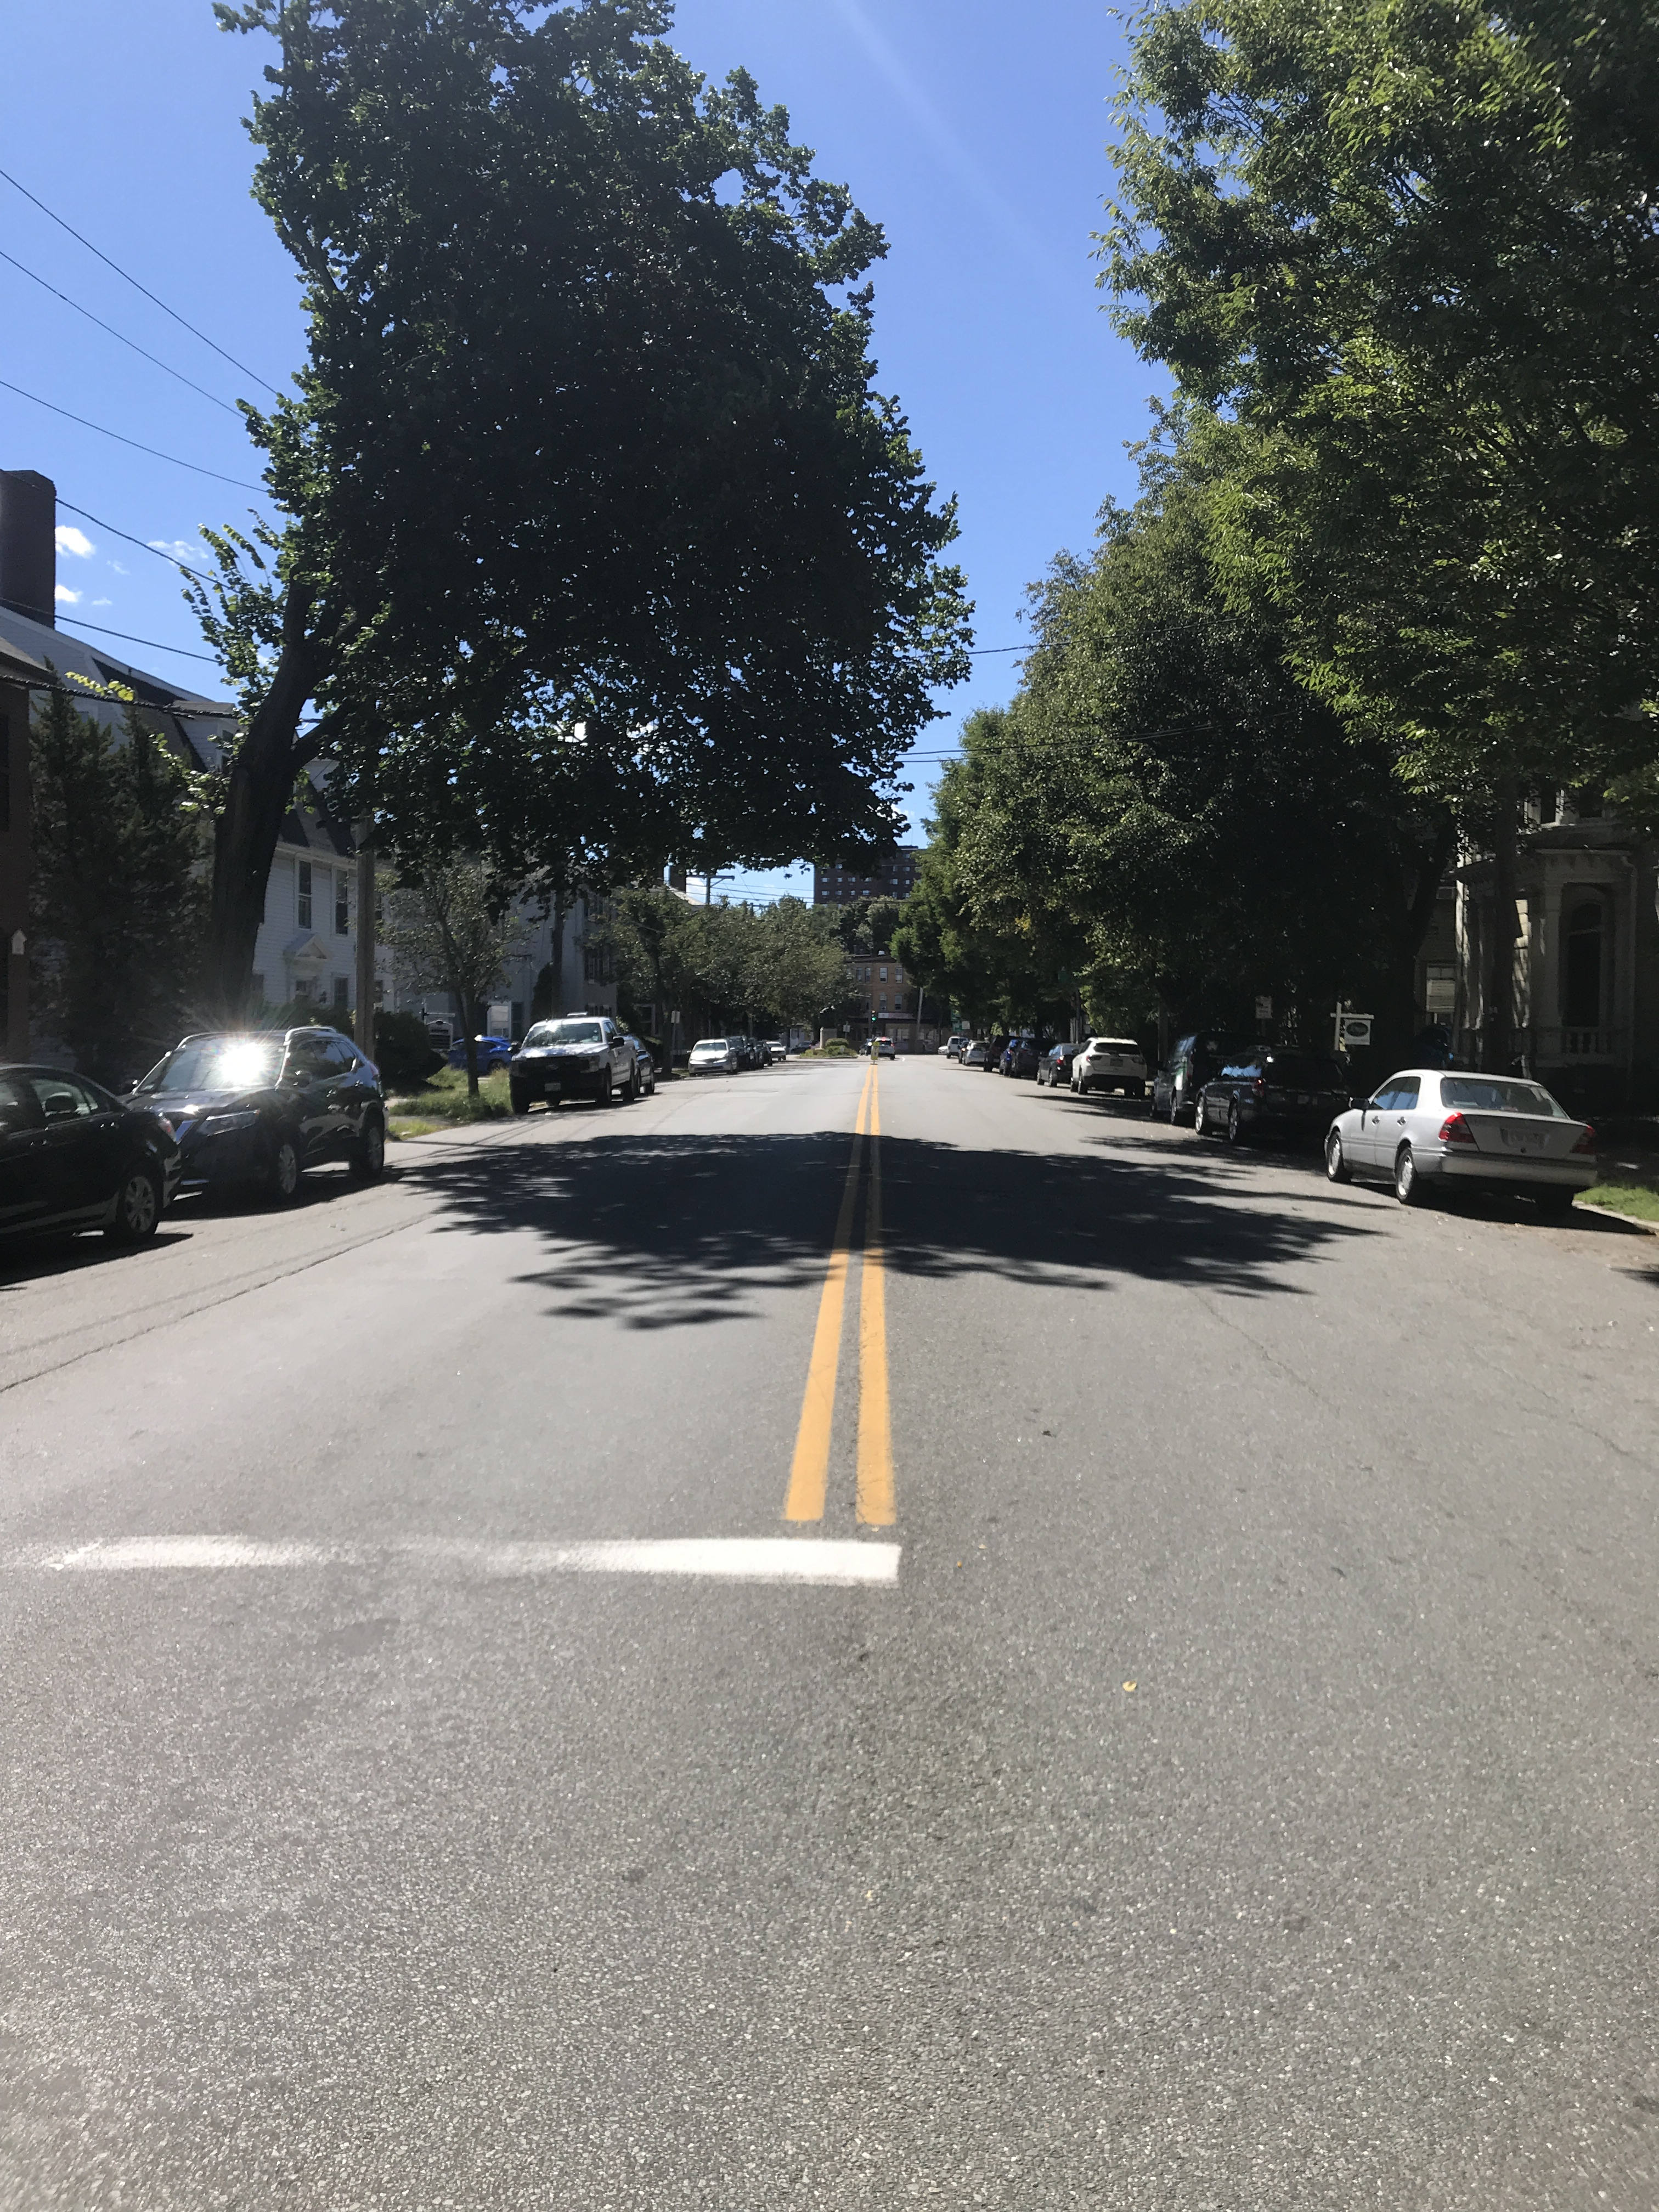 View down the center of Essex Street from Flint Street, looking west. Both sides of the street are lined with trees and cars. In the far distance Salem Heights can be seen above the trees.